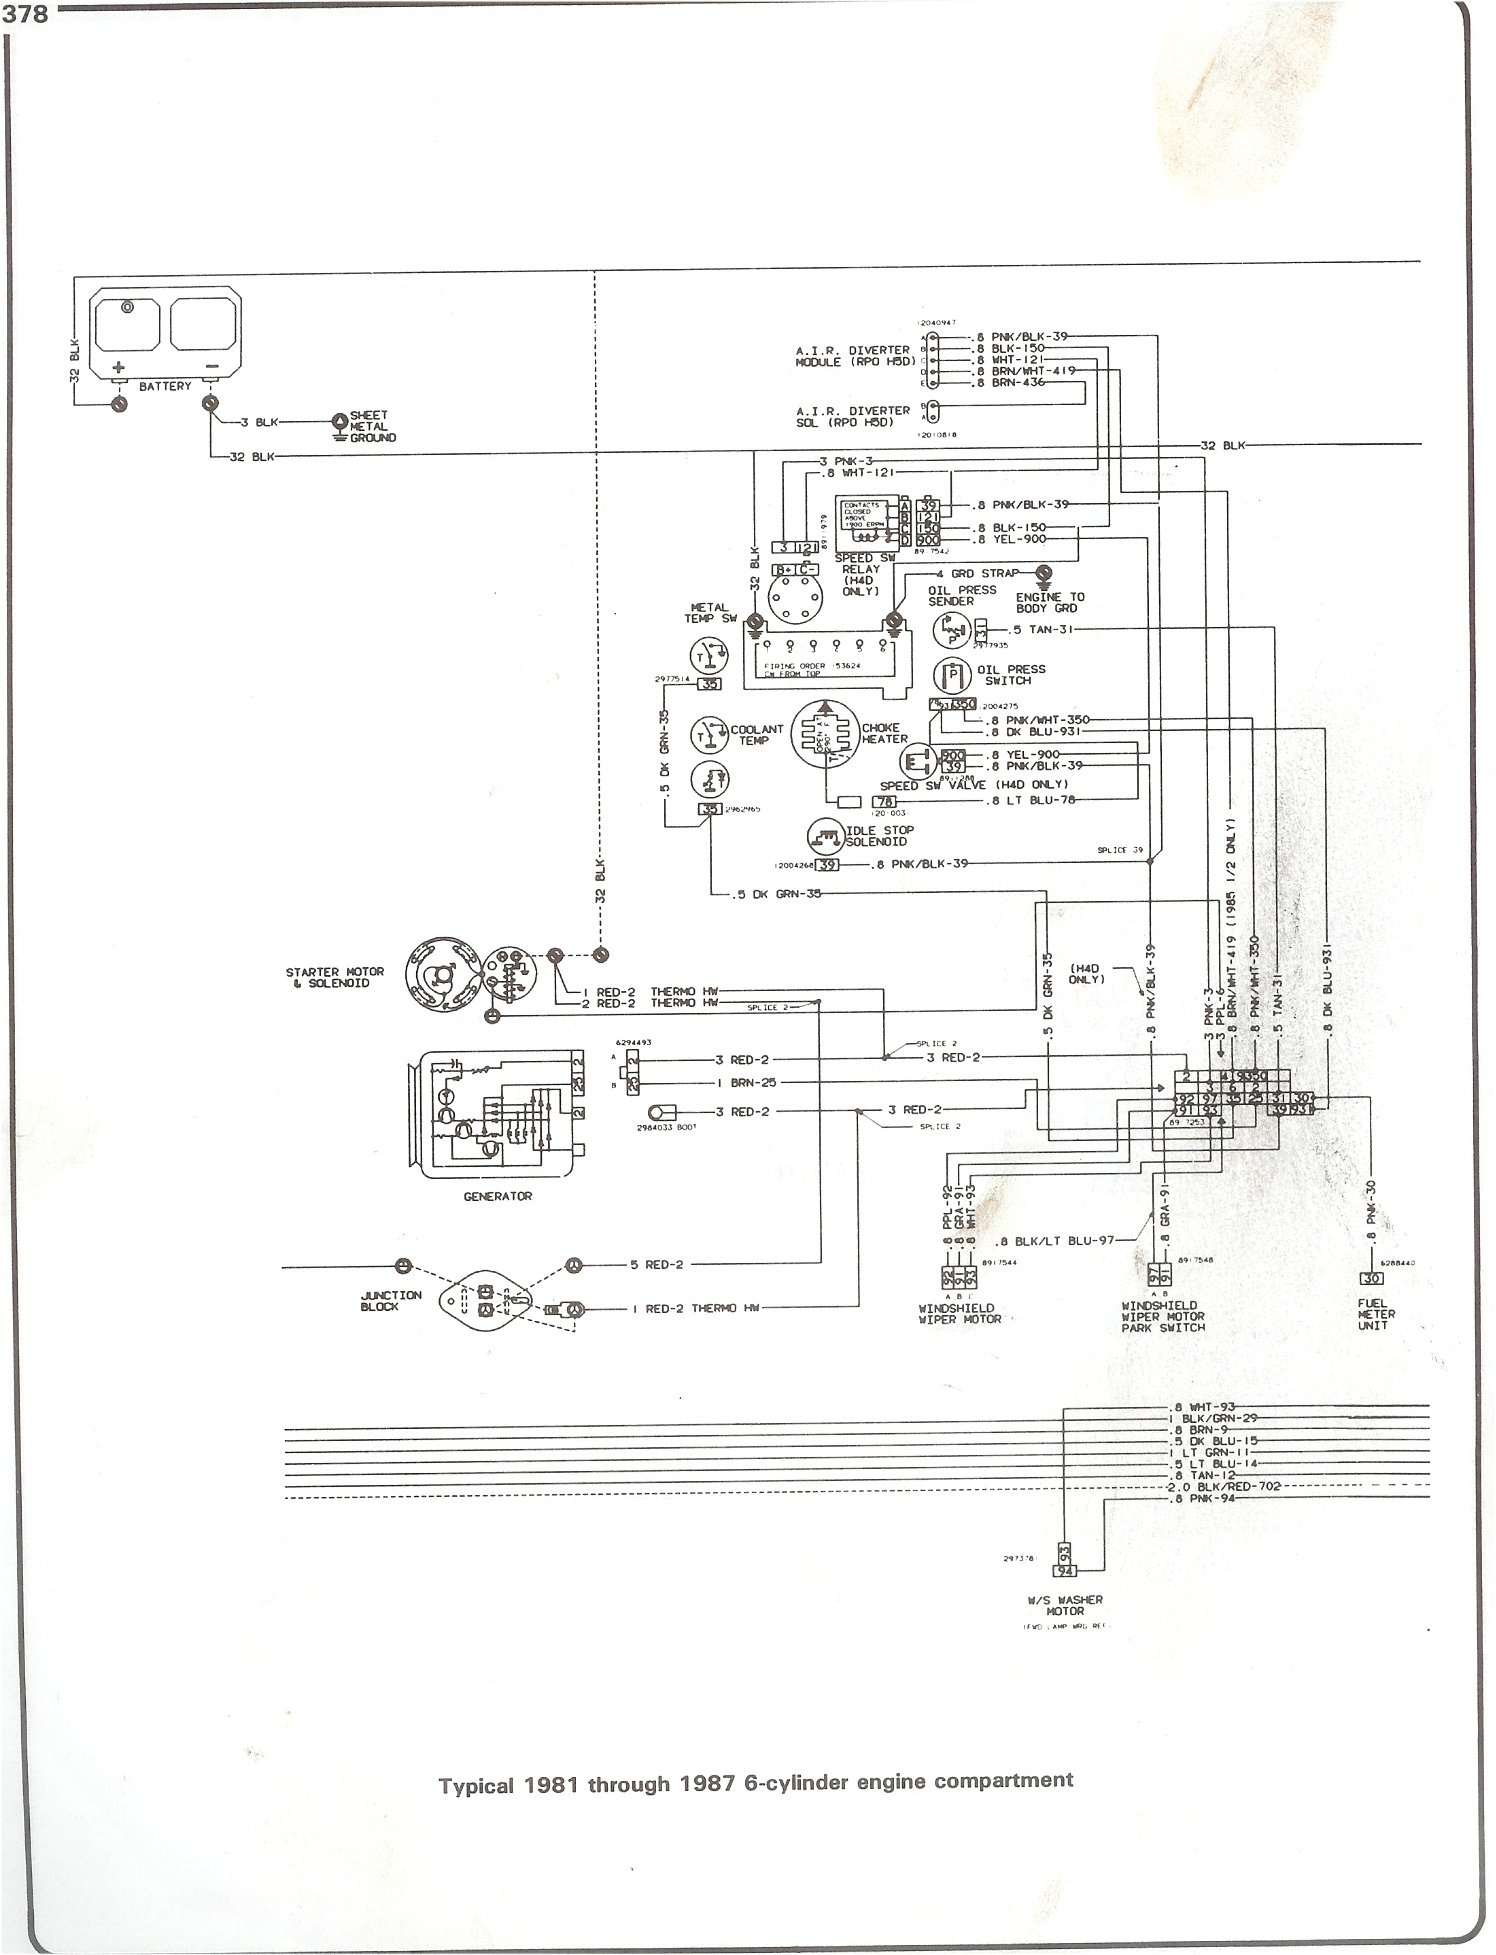 complete 73 87 wiring diagrams rh forum 73 87chevytrucks com Switch Controlled Outlet Wiring Diagram 3 Phase Switch Wiring